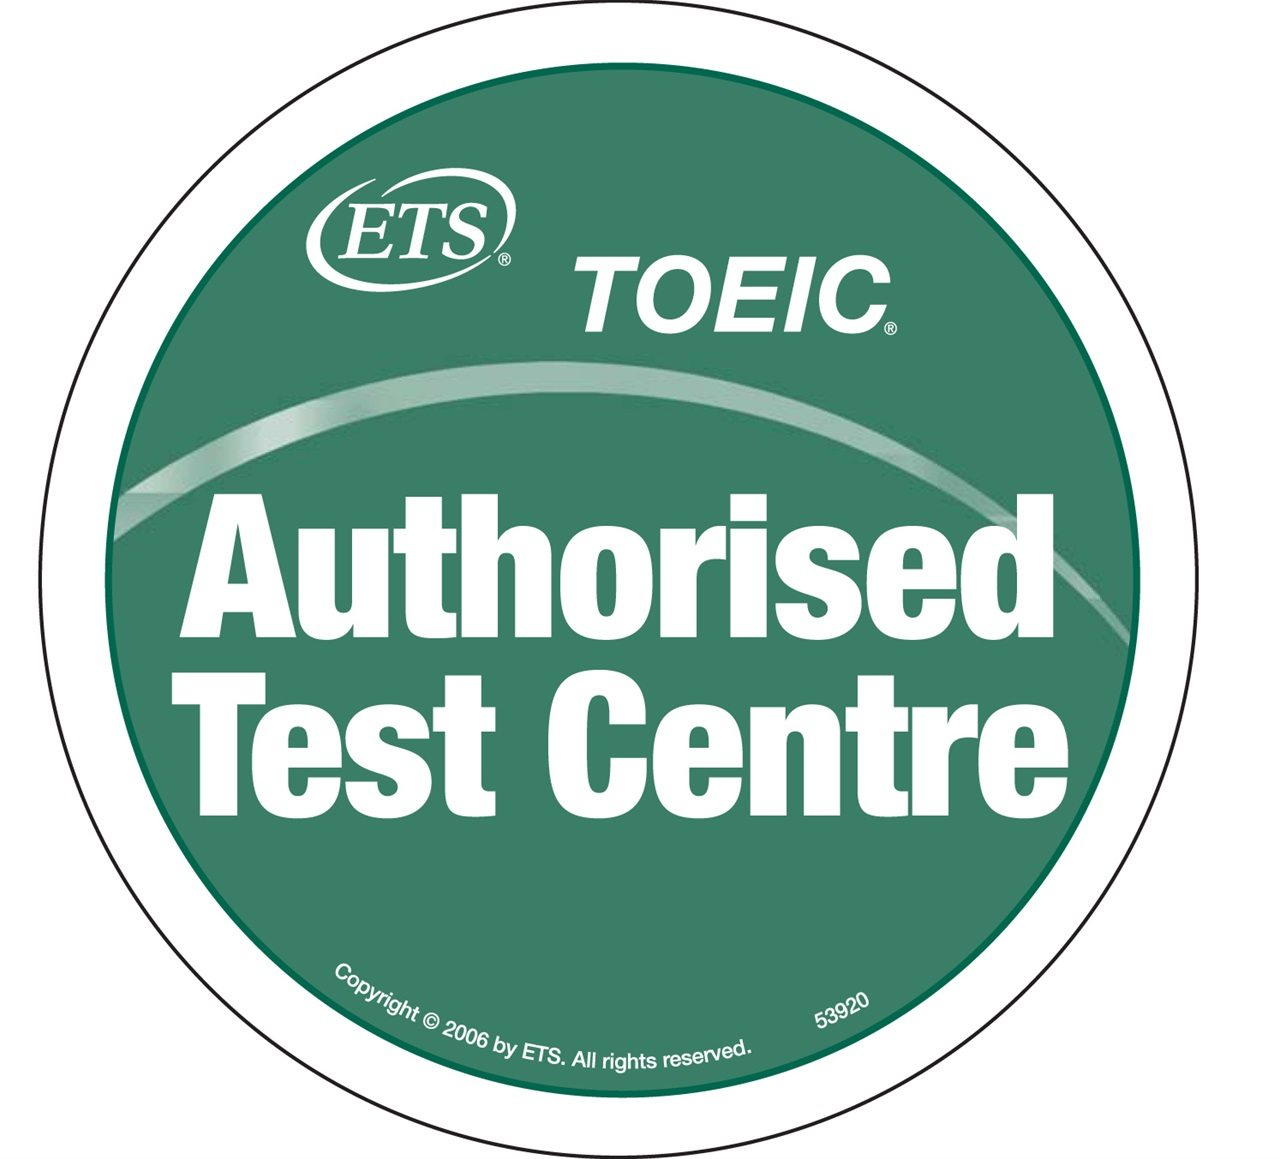 TOEIC test on this date is cancelled